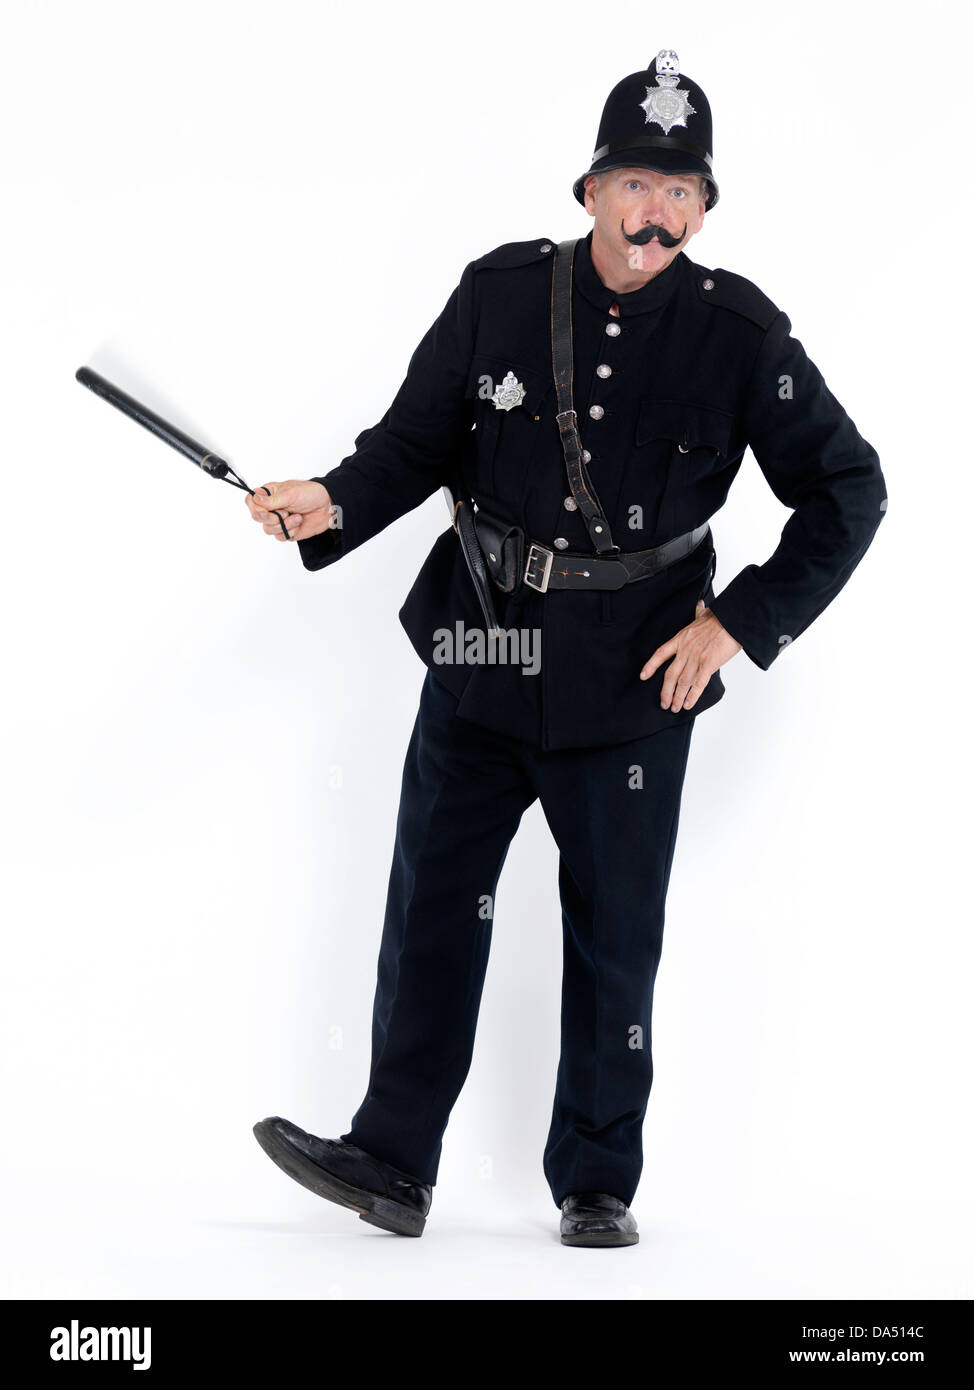 Vintage policeman character spinning a baton, isolated on white background - Stock Image